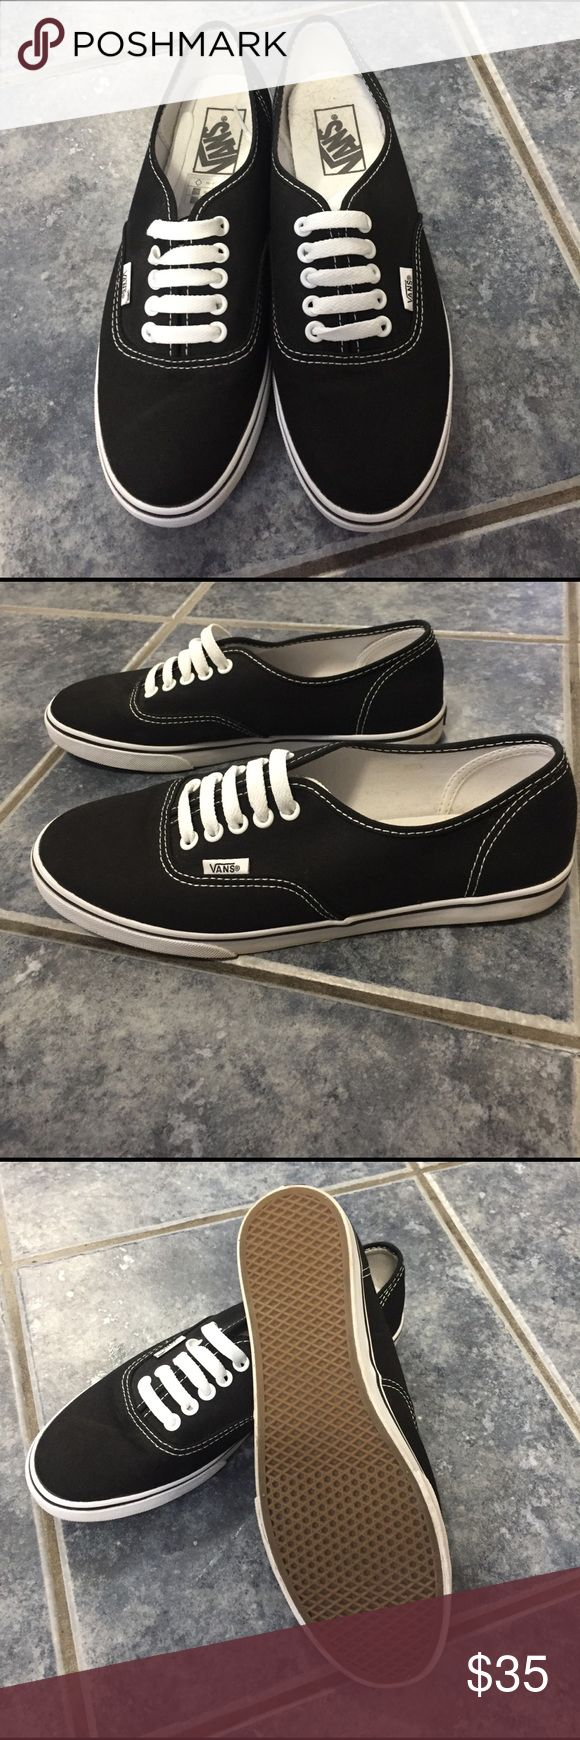 Brand. New Vans women's Brand new Black Vans women's size 8.5 Vans Shoes Sneakers